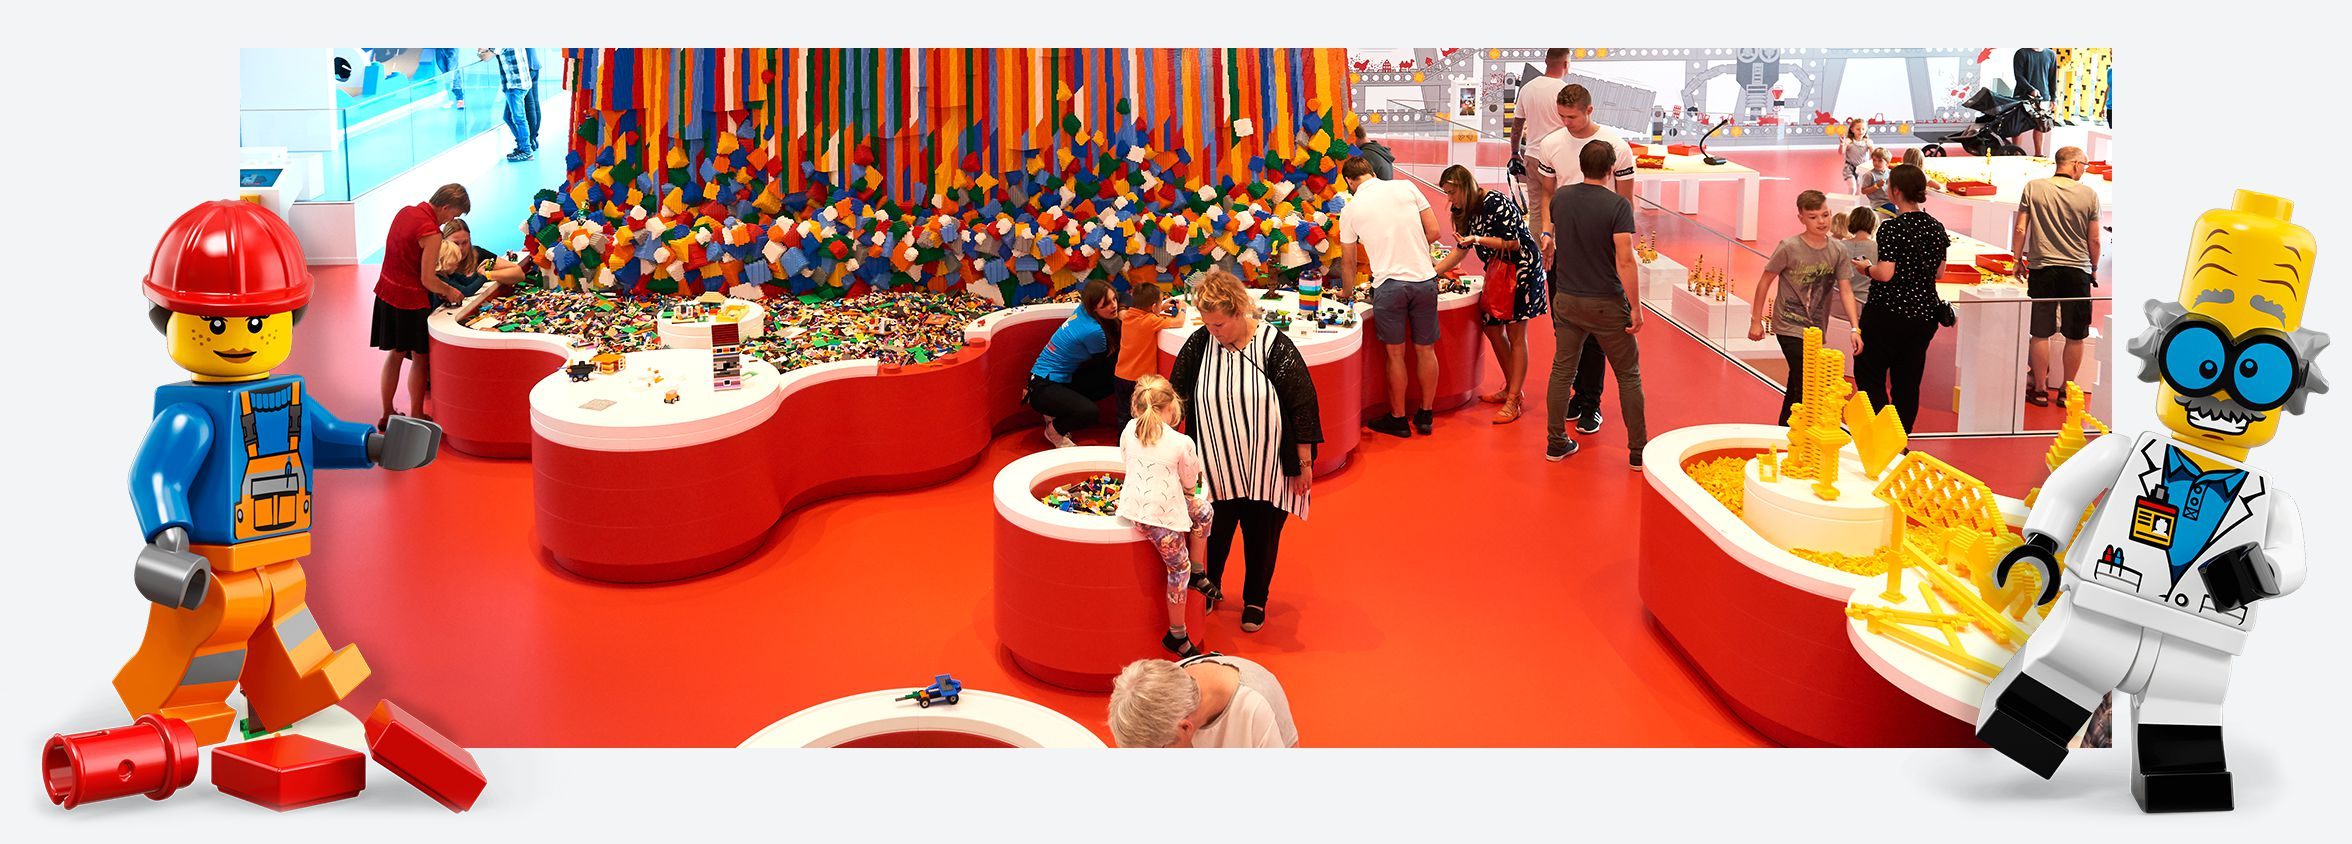 Lego house red zone